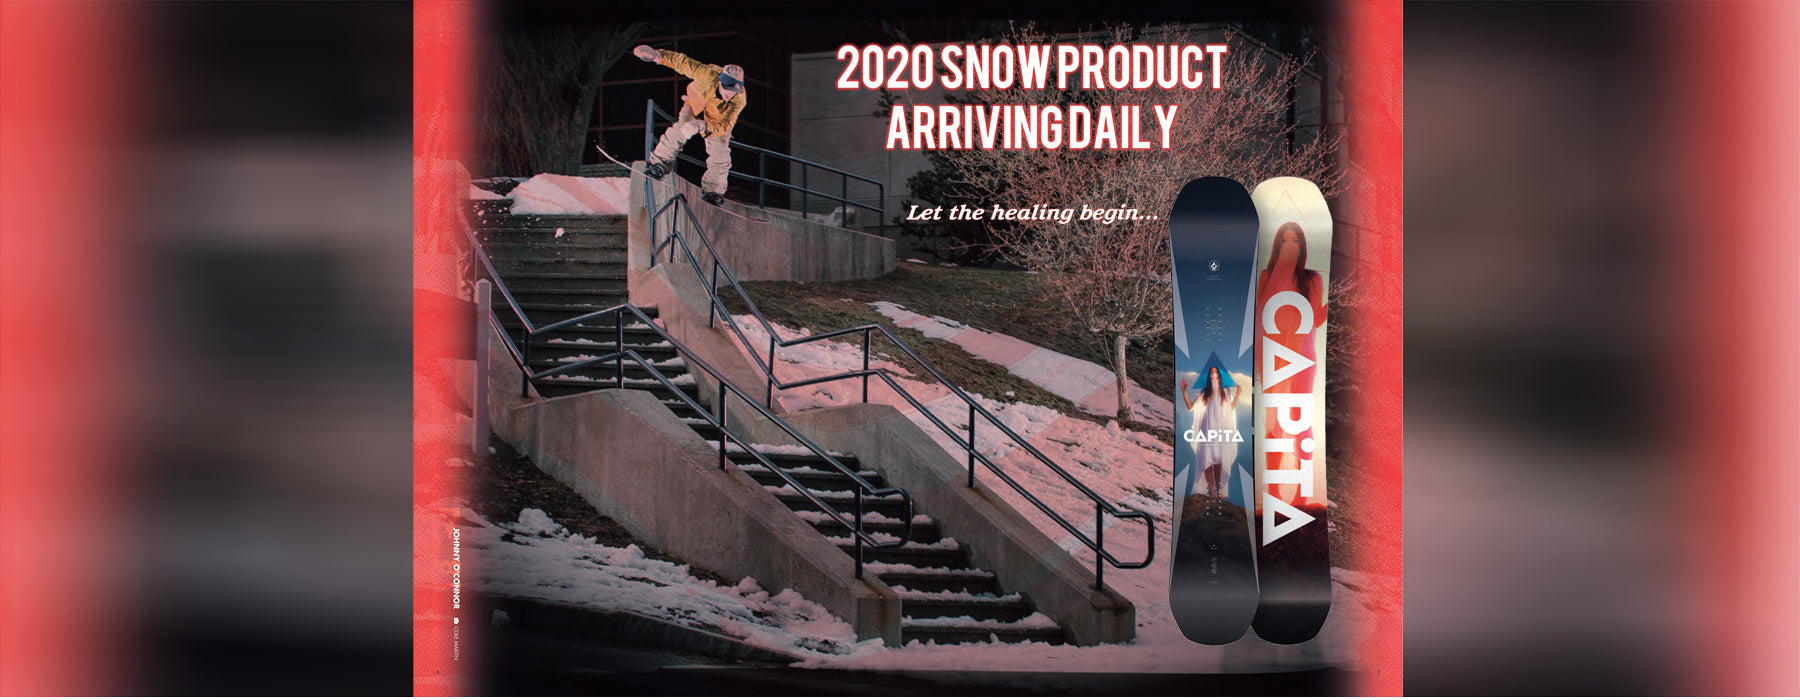 snowboard gear from never summer, 686, lib tech, gnu, marhar, academy, arbor, rome, volcom, picture.